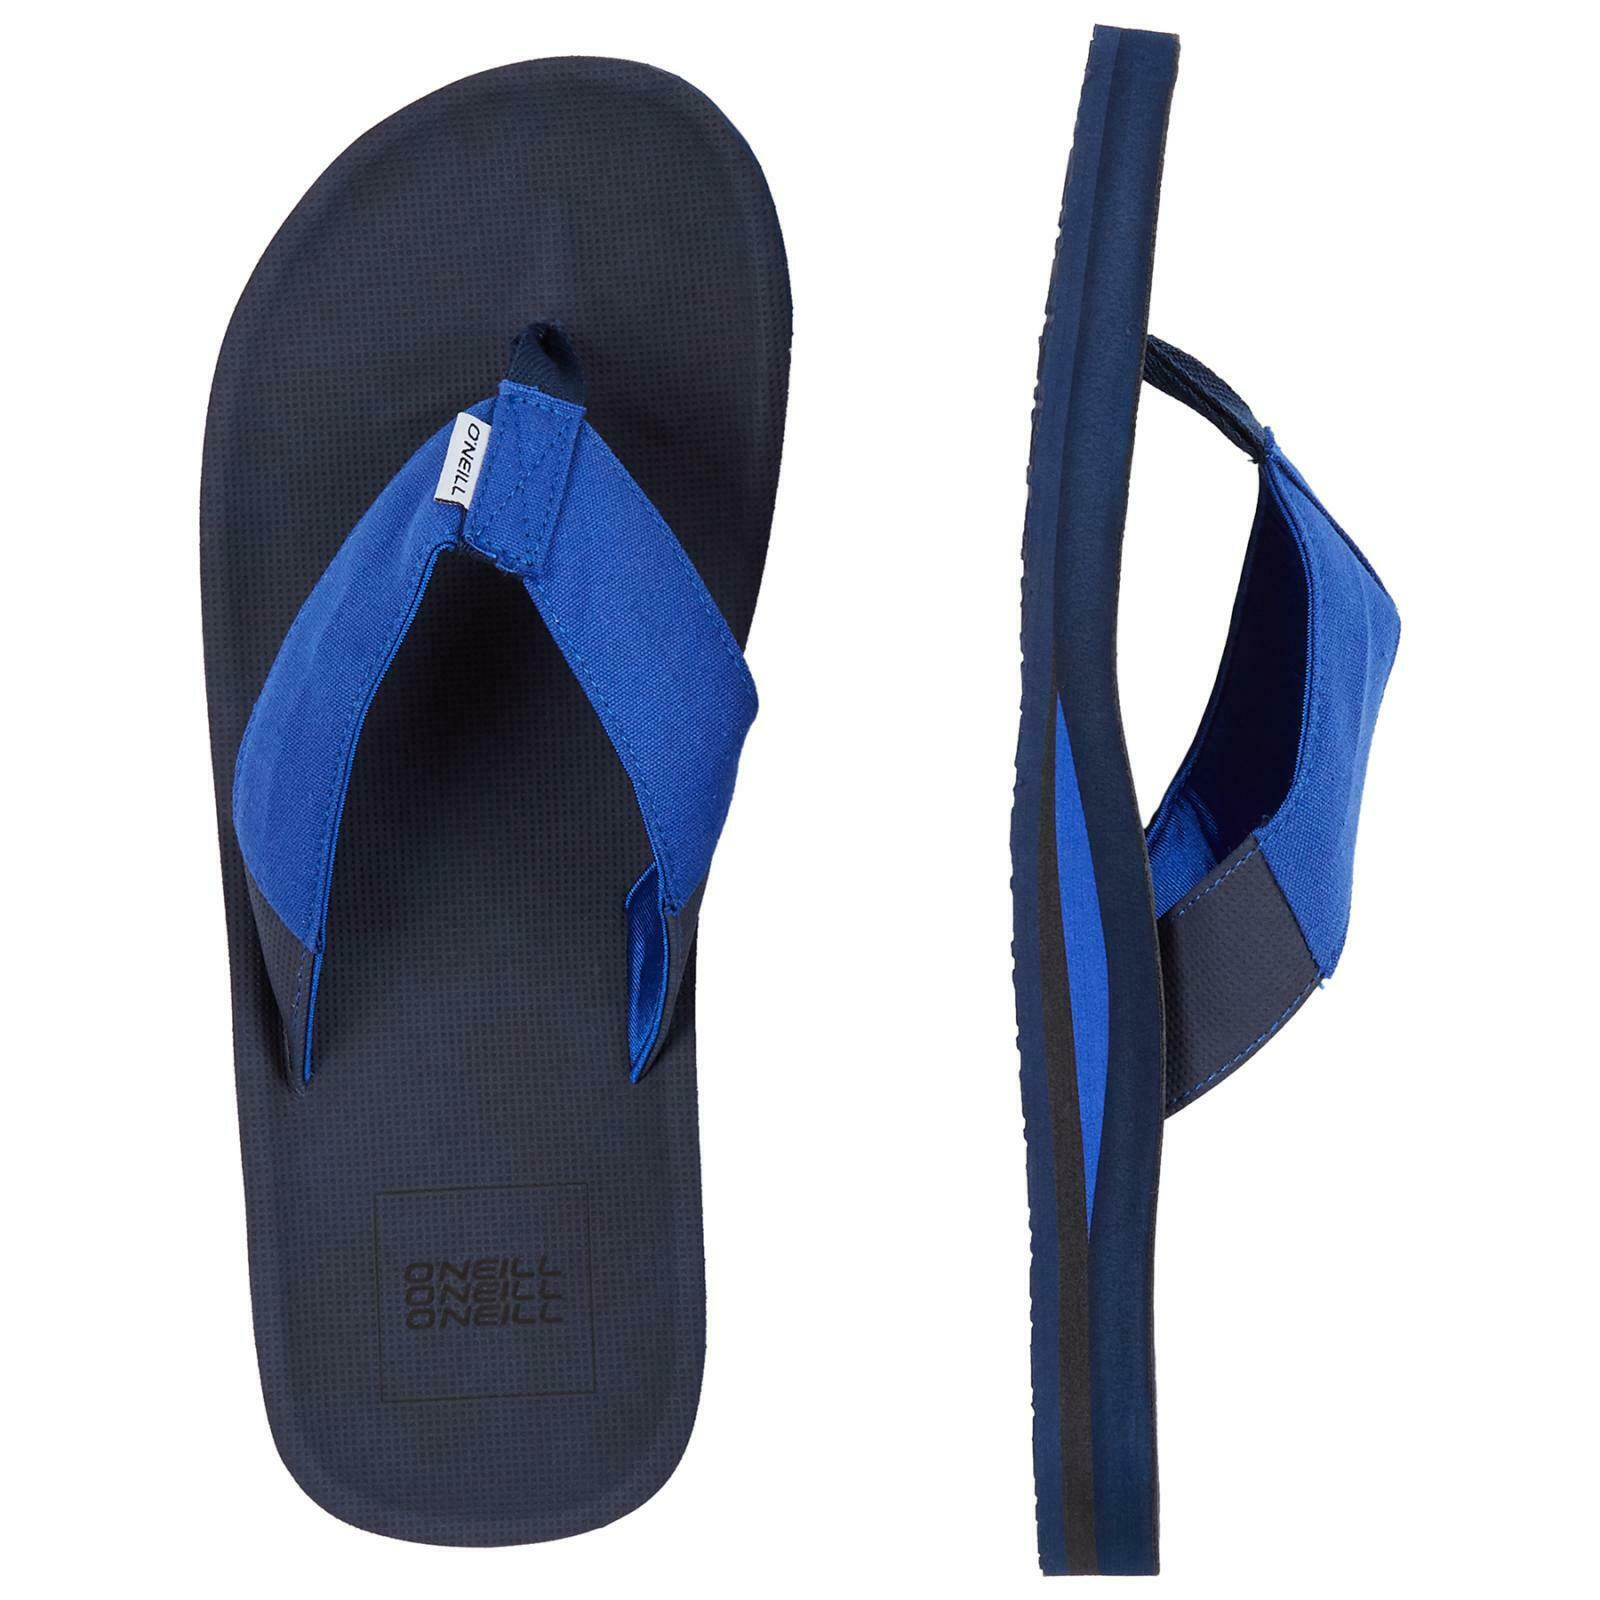 MENS O'NEILL CHAD SANDALS. INK blueE